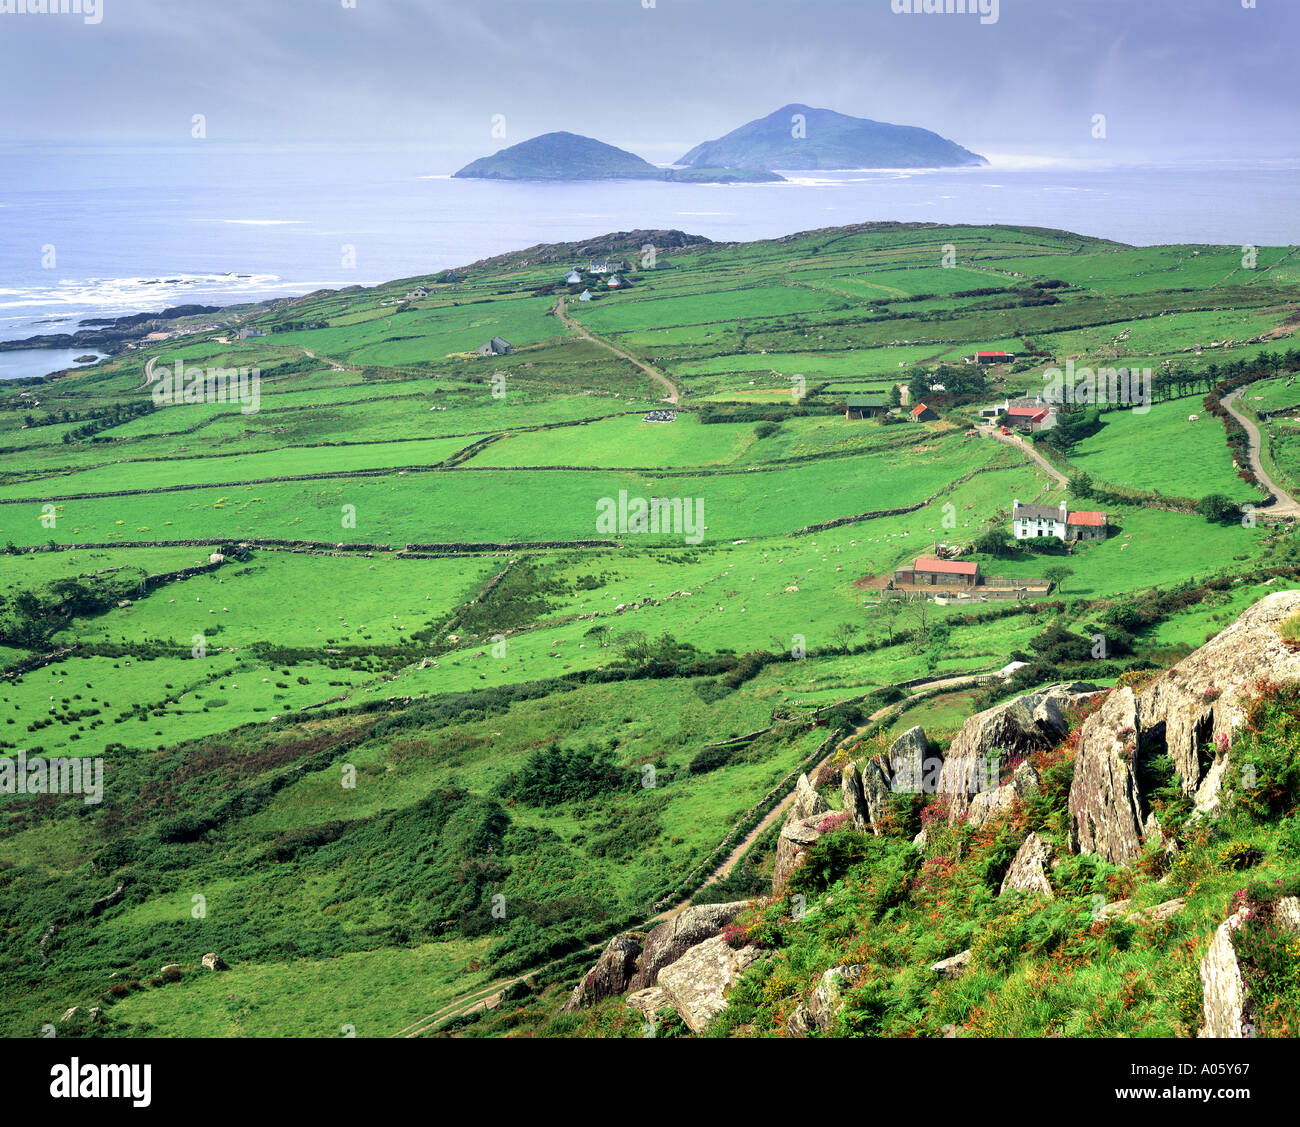 IE - CO. KERRY:  Derrynane Bay showing Deenish Scariff Islands along the Ring of Kerry - Stock Image